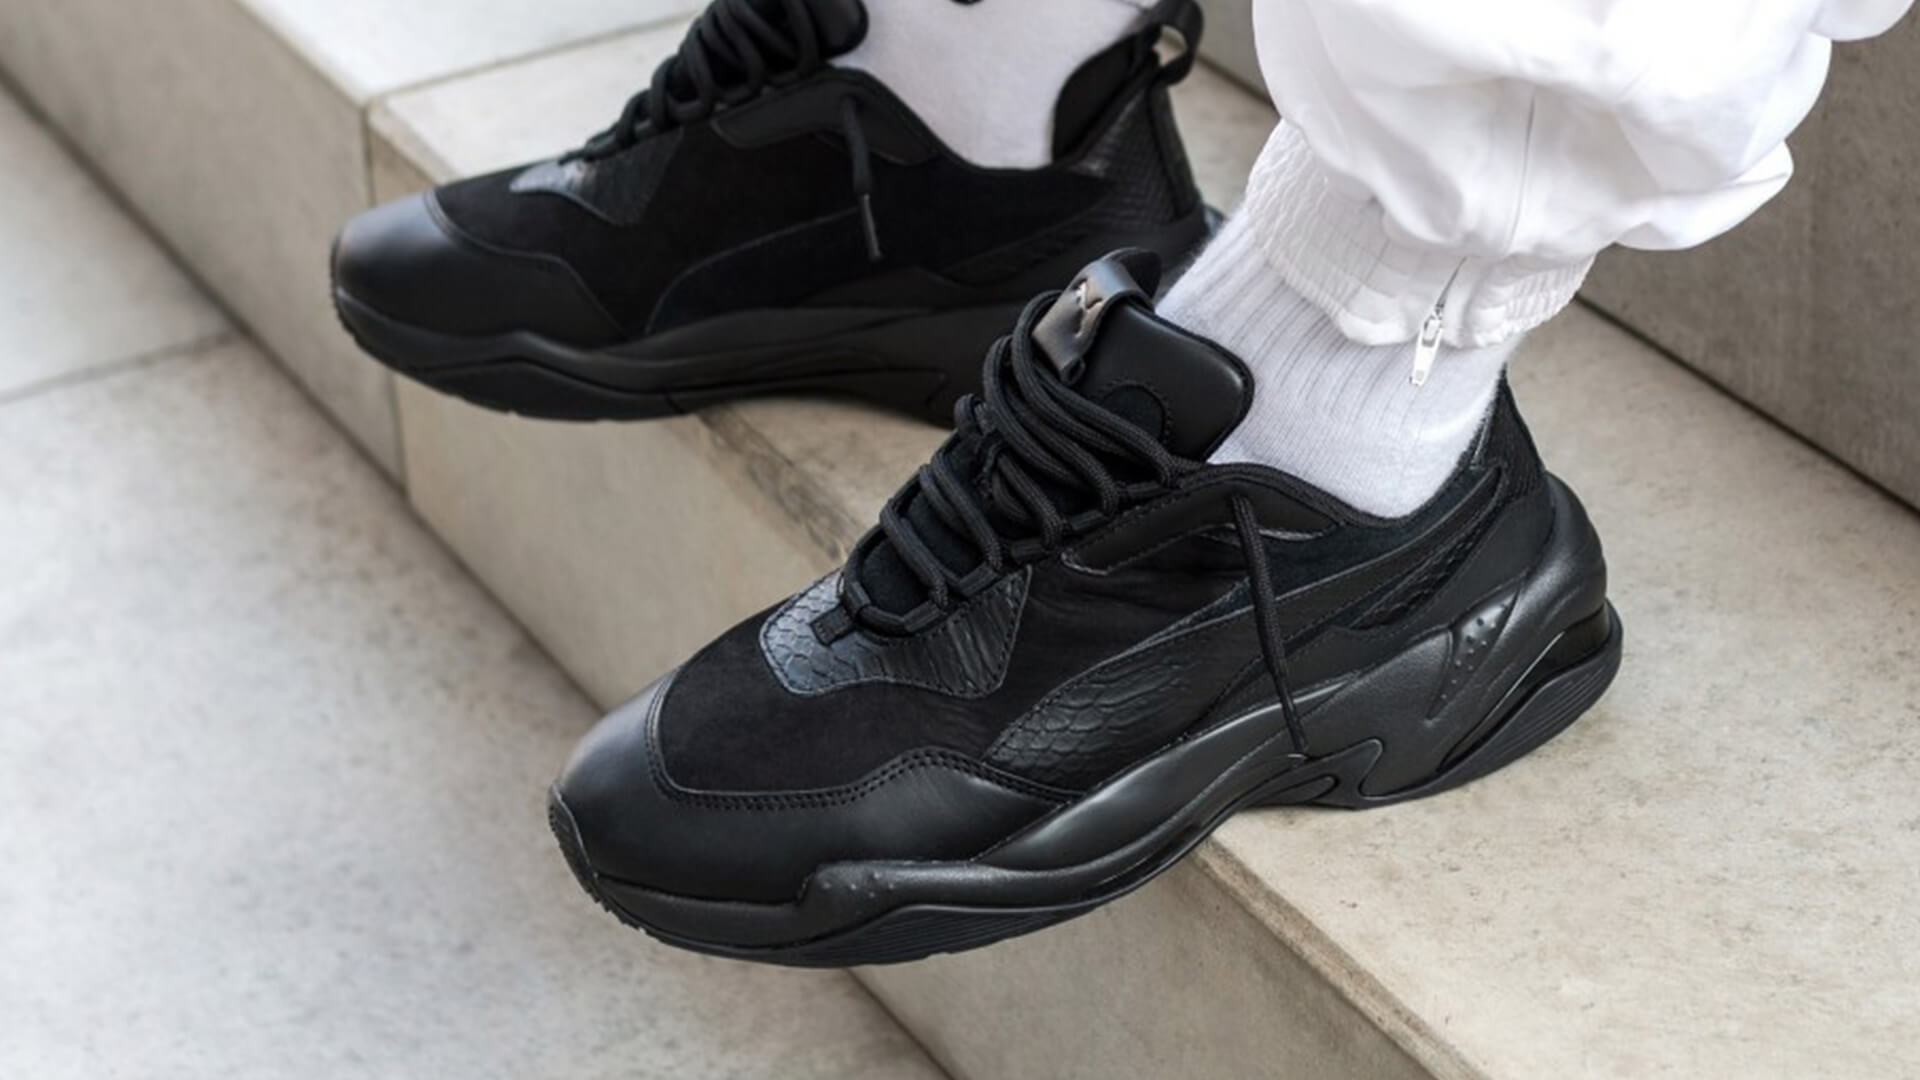 Latest PUMA Trainer Releases & Next Drops in 2020 | The Sole ...